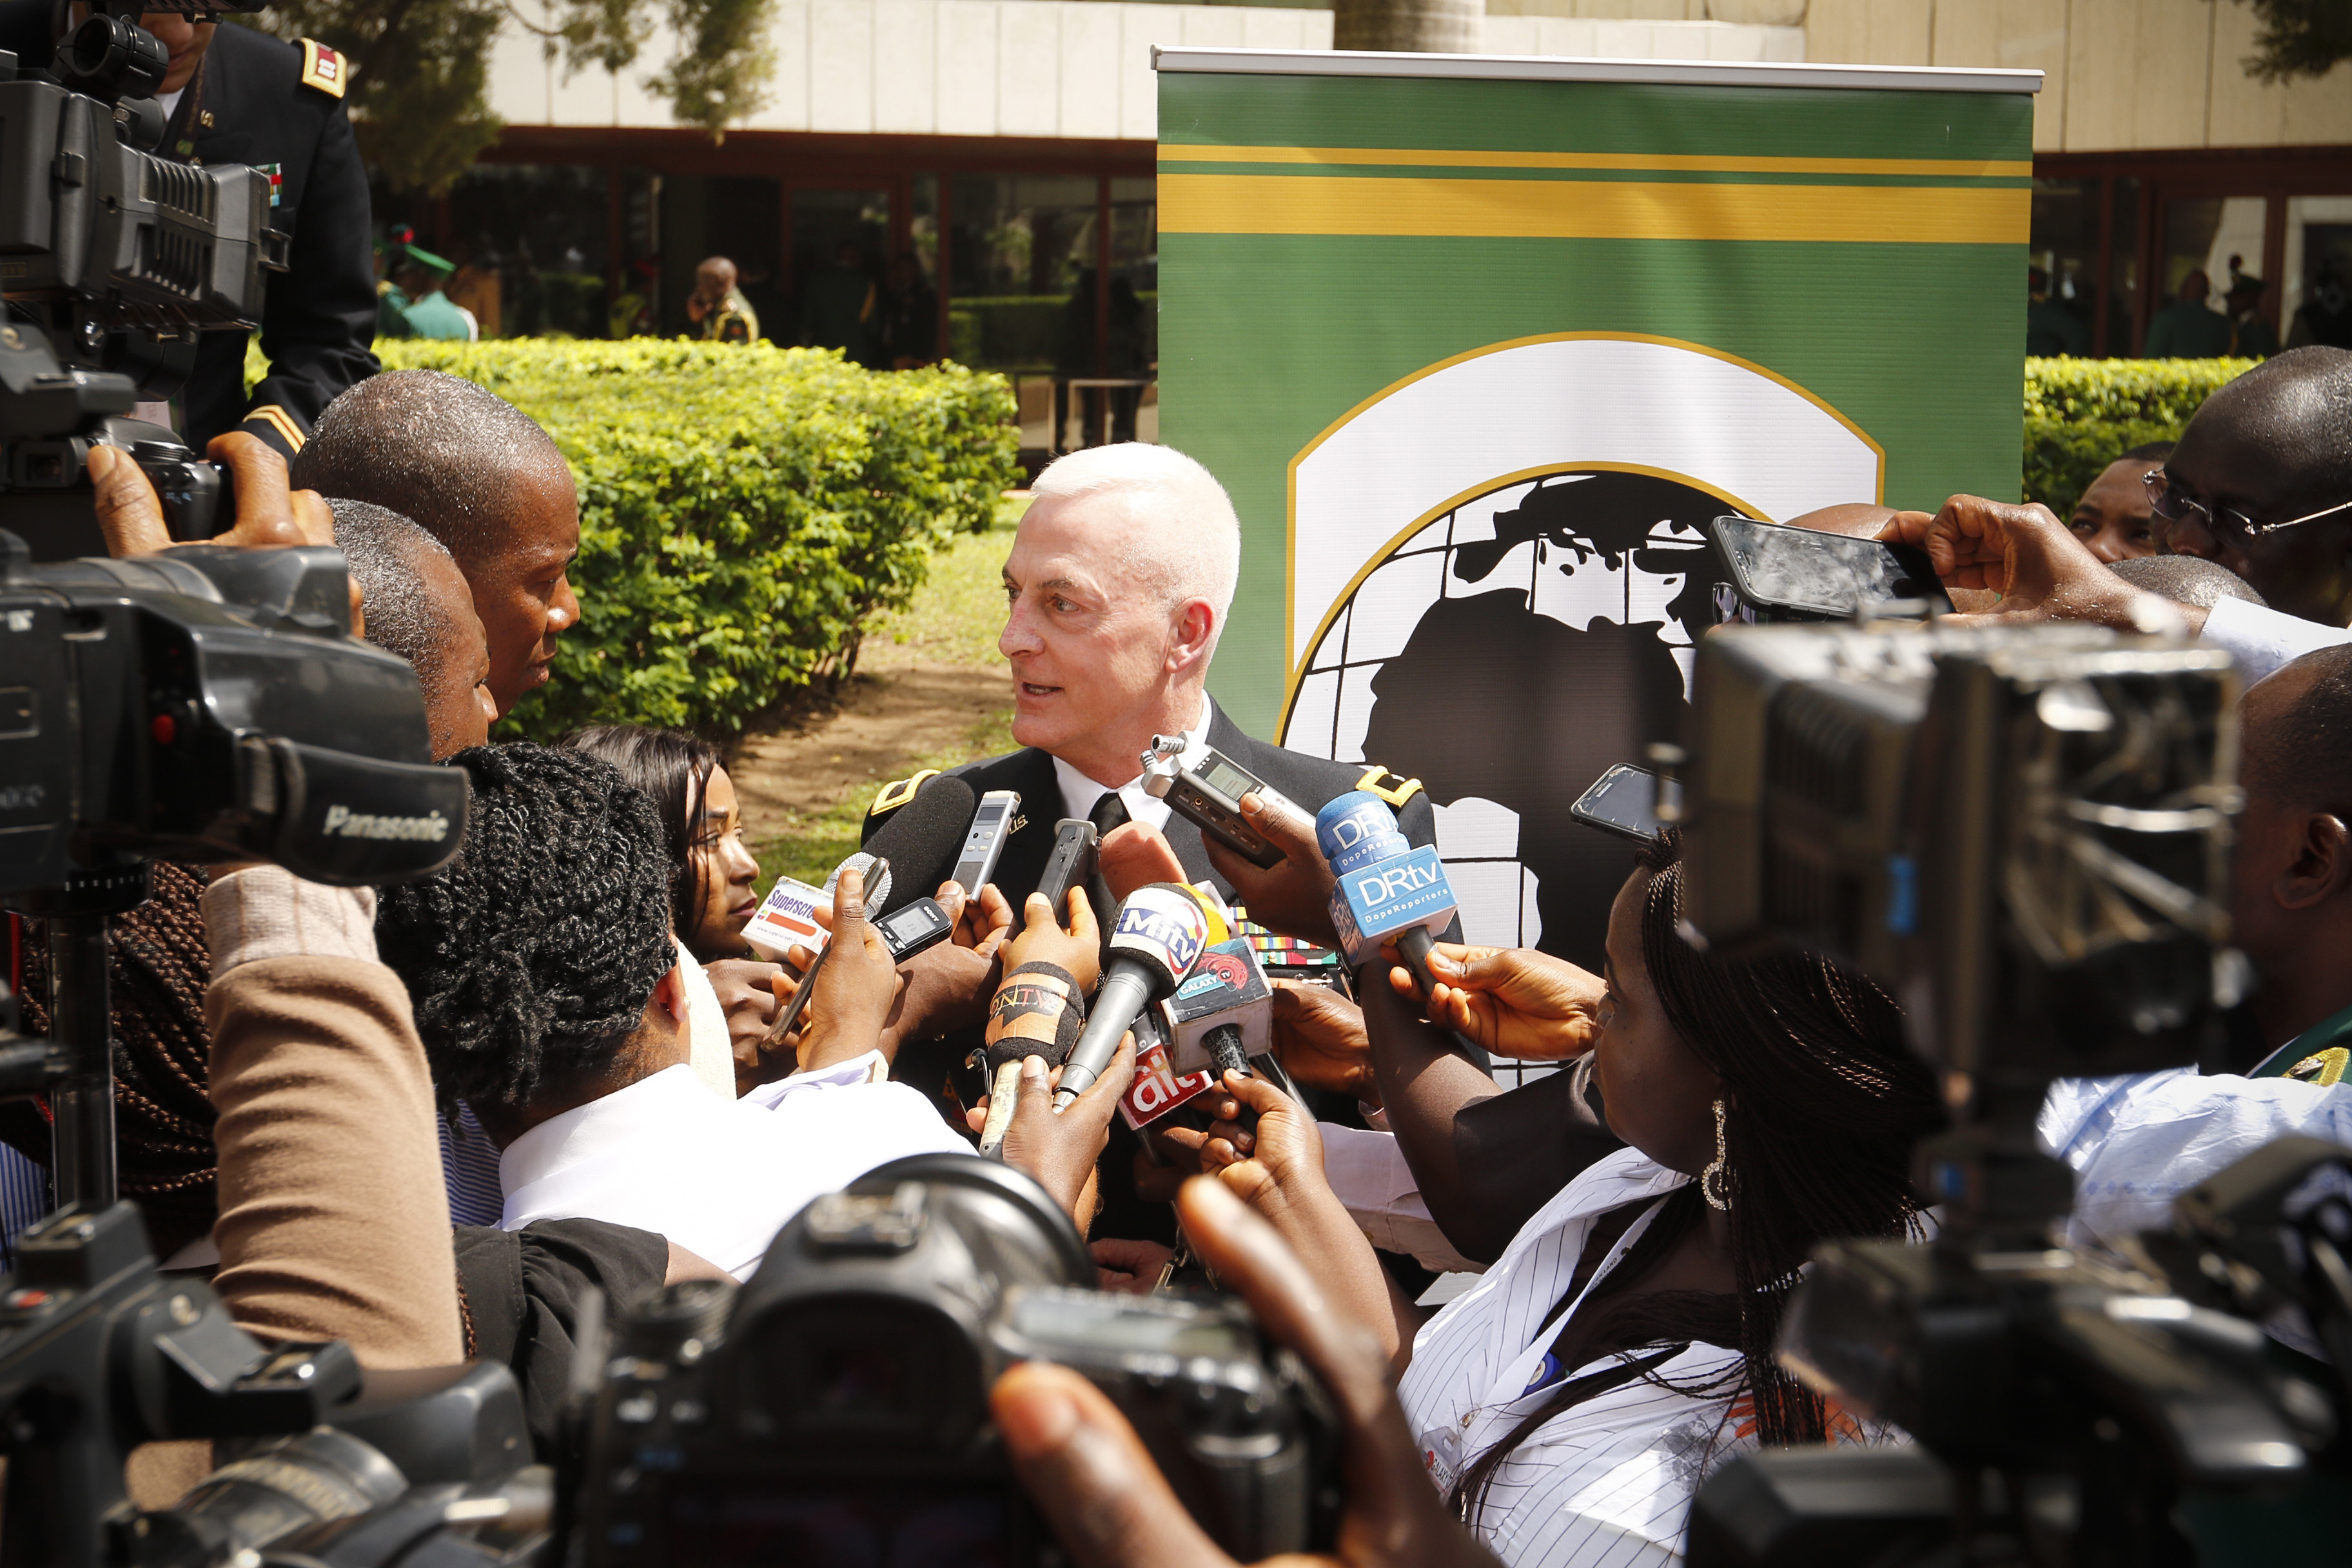 U.S. Army Brig. Gen. Eugene J. LeBoeuf, U.S. Army Africa acting commanding general, answers questions with local media during an interview following the opening ceremony of the African Land Forces Summit in Abuja, Nigeria, April 16, 2018. ALFS 18 participants will build capacity by utilizing th elesson learned during the  plenary sessions, breakout sessions and exchanges to combat violent extreme organizations. (U.S. Army photo by Staff Sgt. Joshua Tverberg)